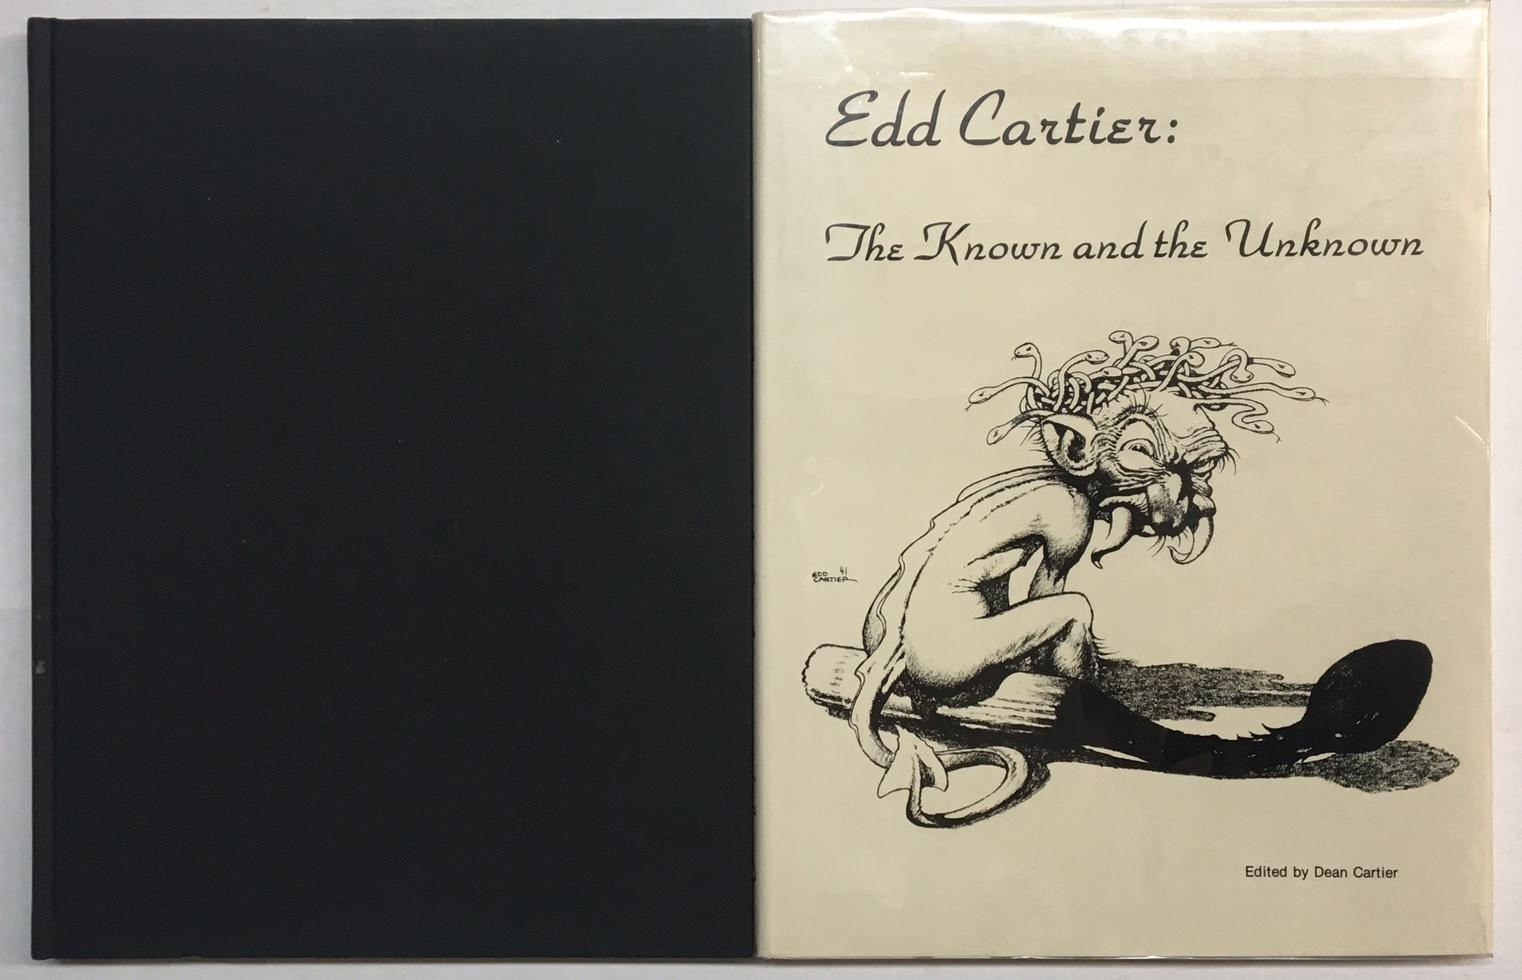 Edd Cartier: The Known and the Unknown Cartier, Dean - Editor Fine Hardcover Although unstated, this is one of only 26 publishers copies for private distribution to the contributants. Signed by Edd Cartier, Dean Cartier, Gerry